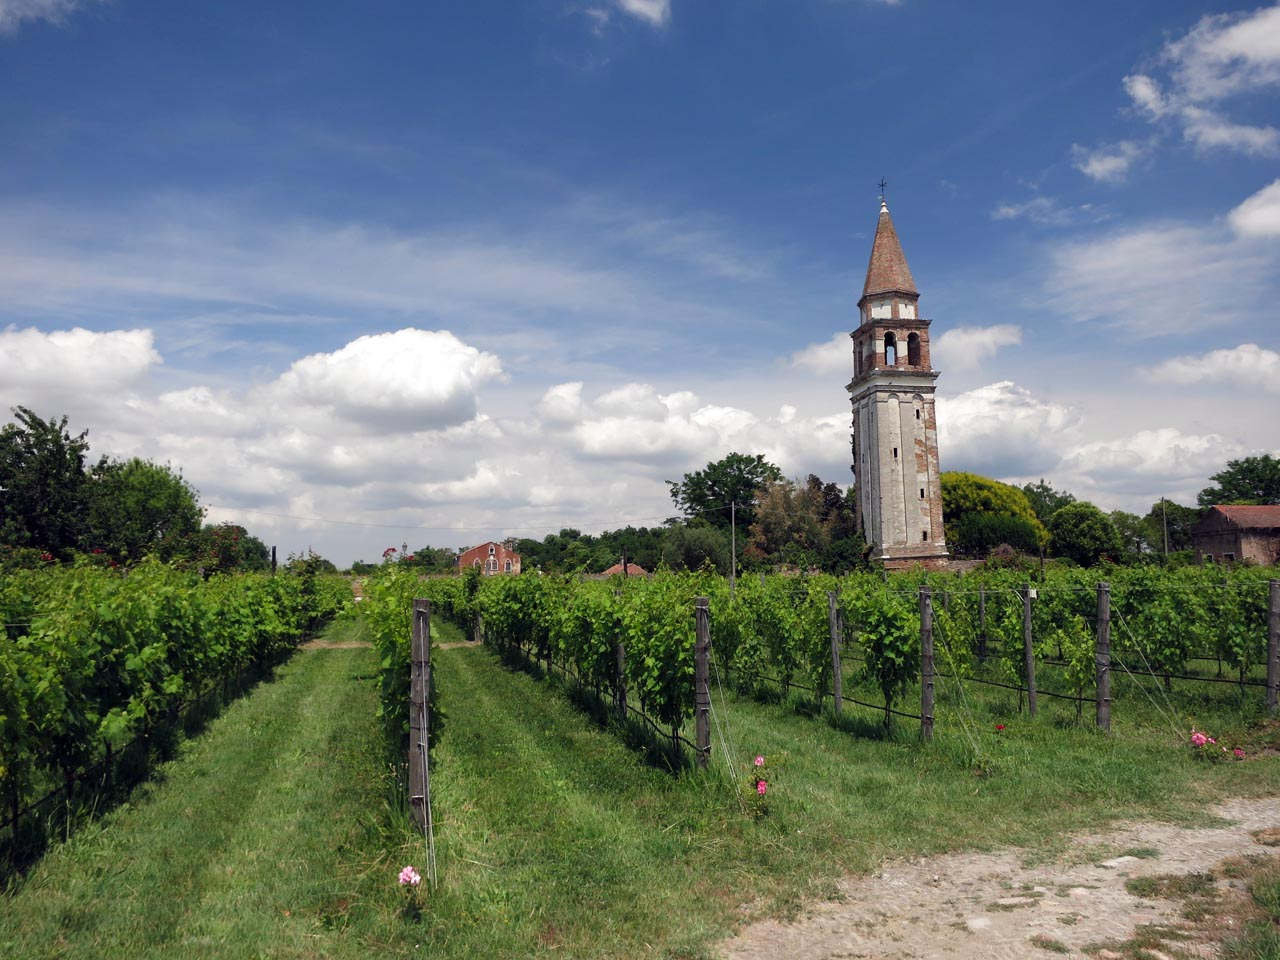 Winery in Mazzorbo